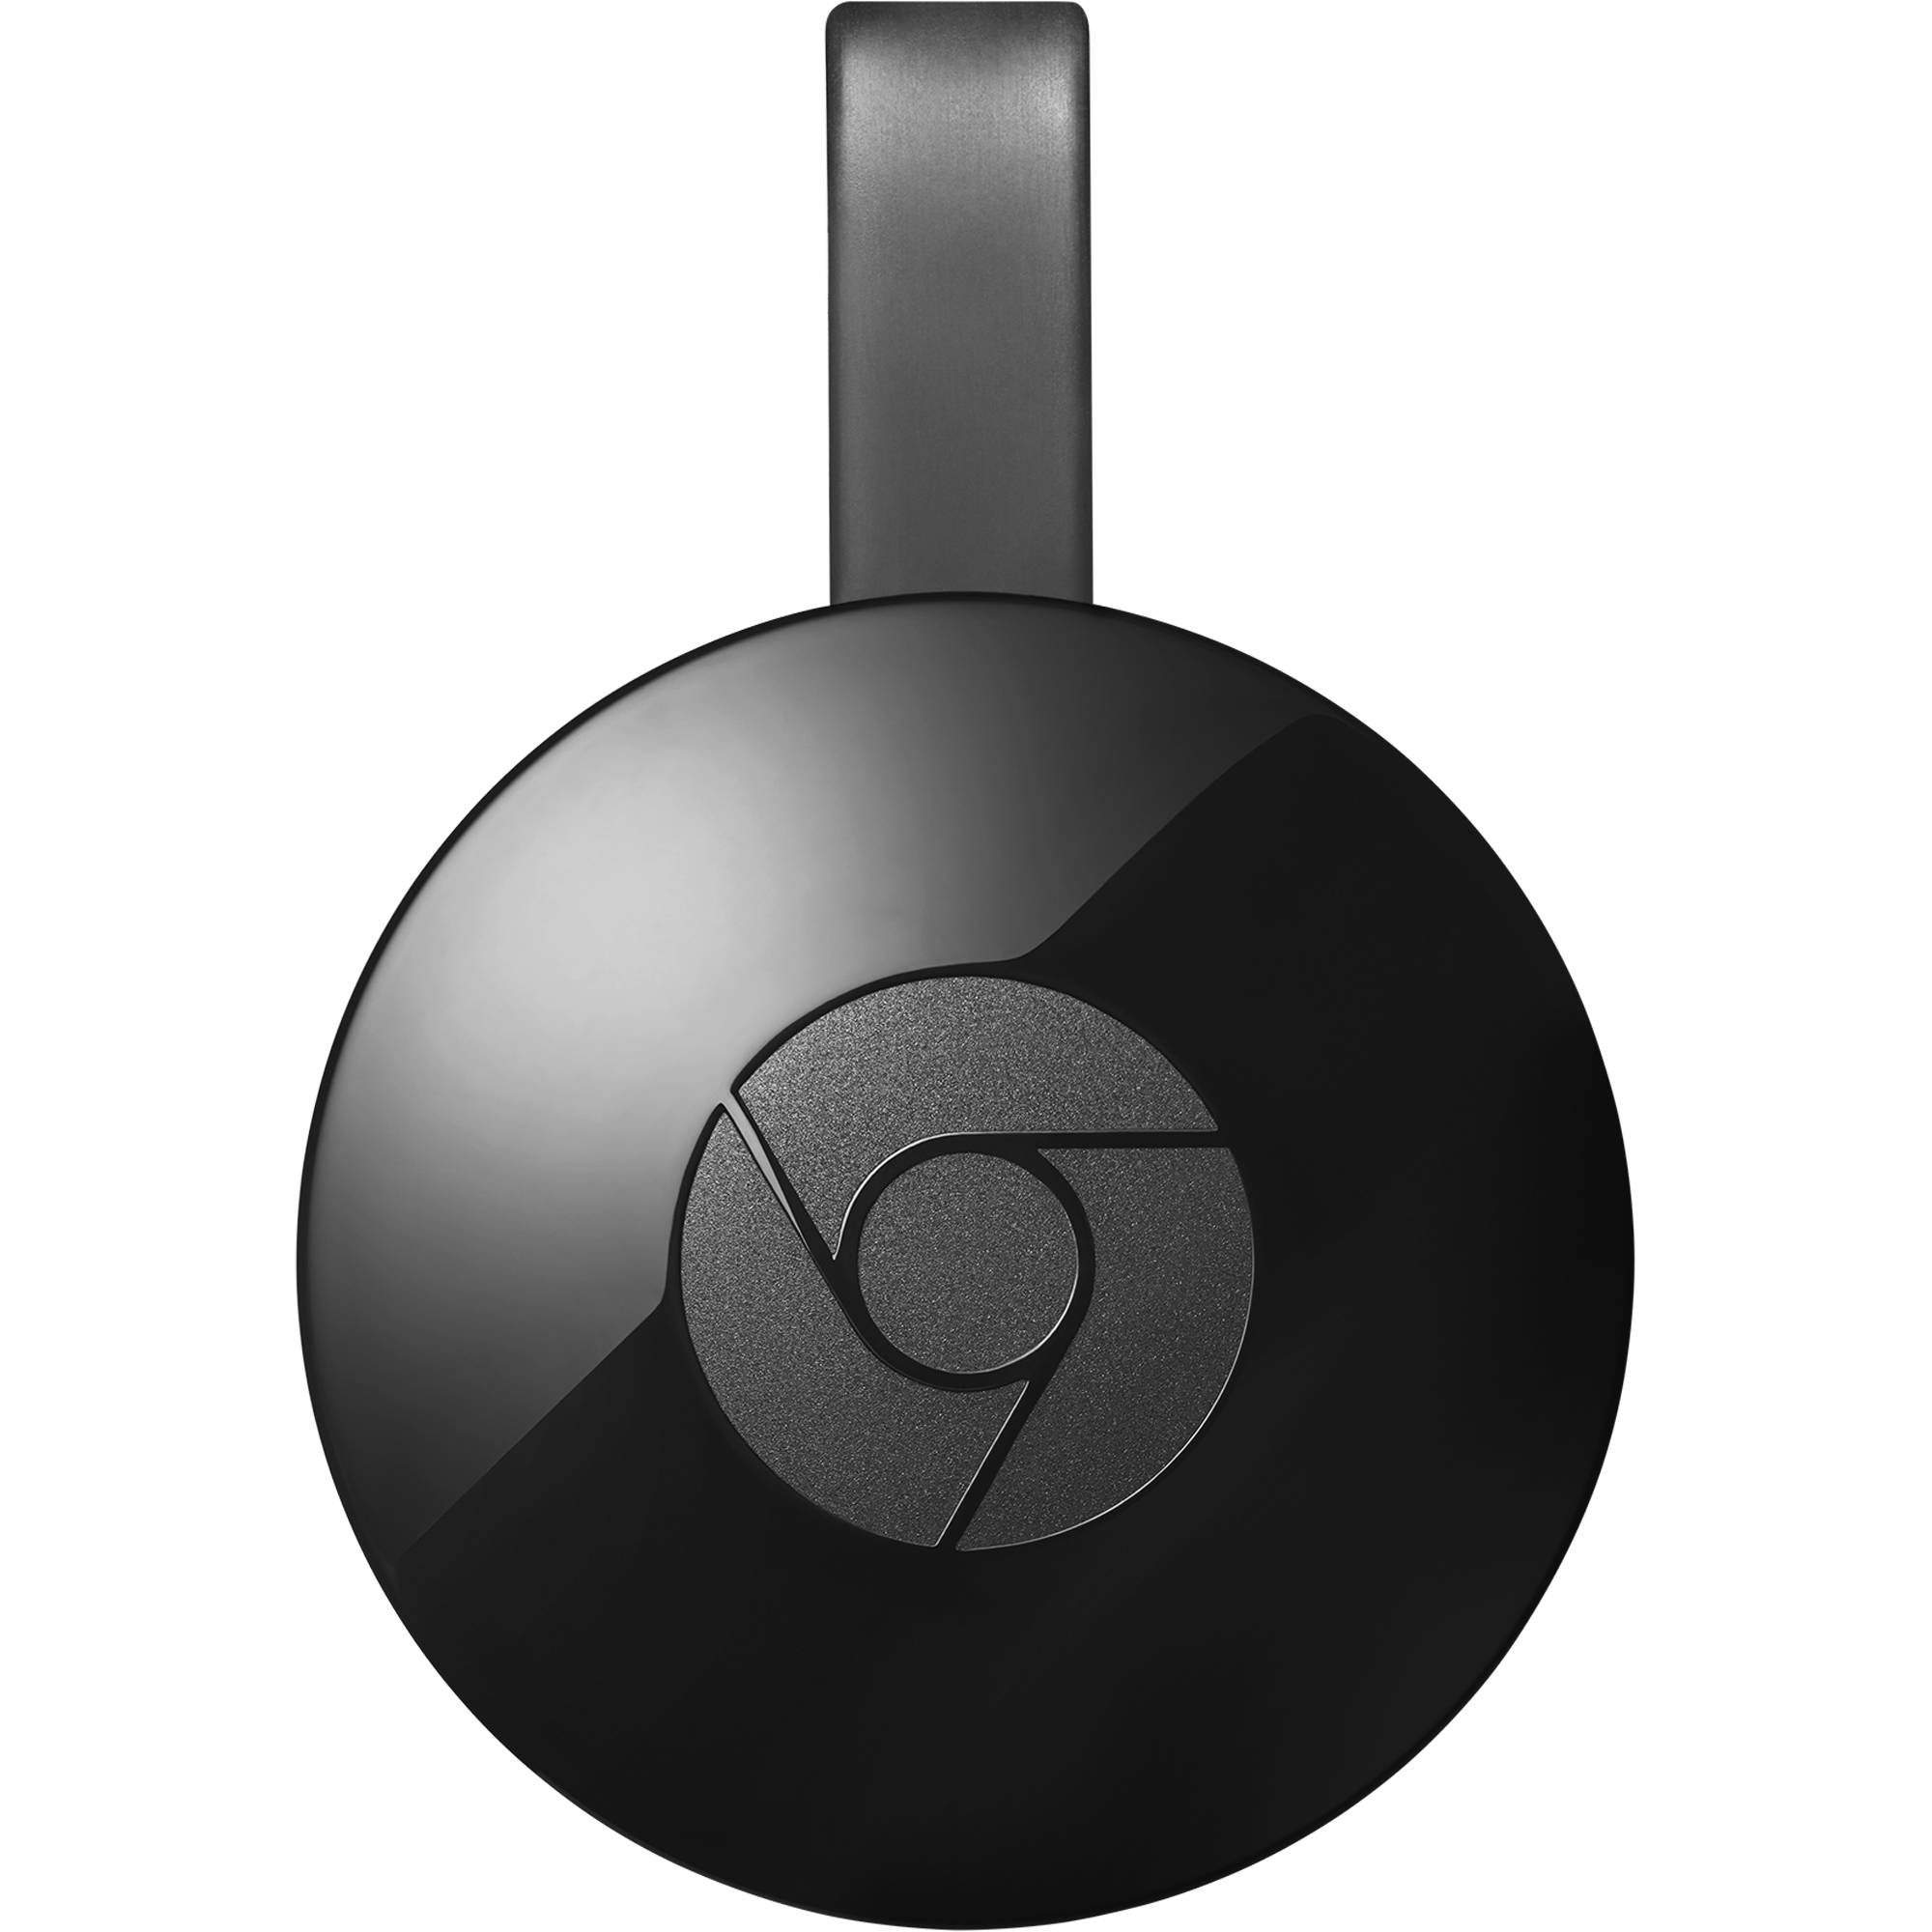 Chromecast (Black, 2nd Generation)